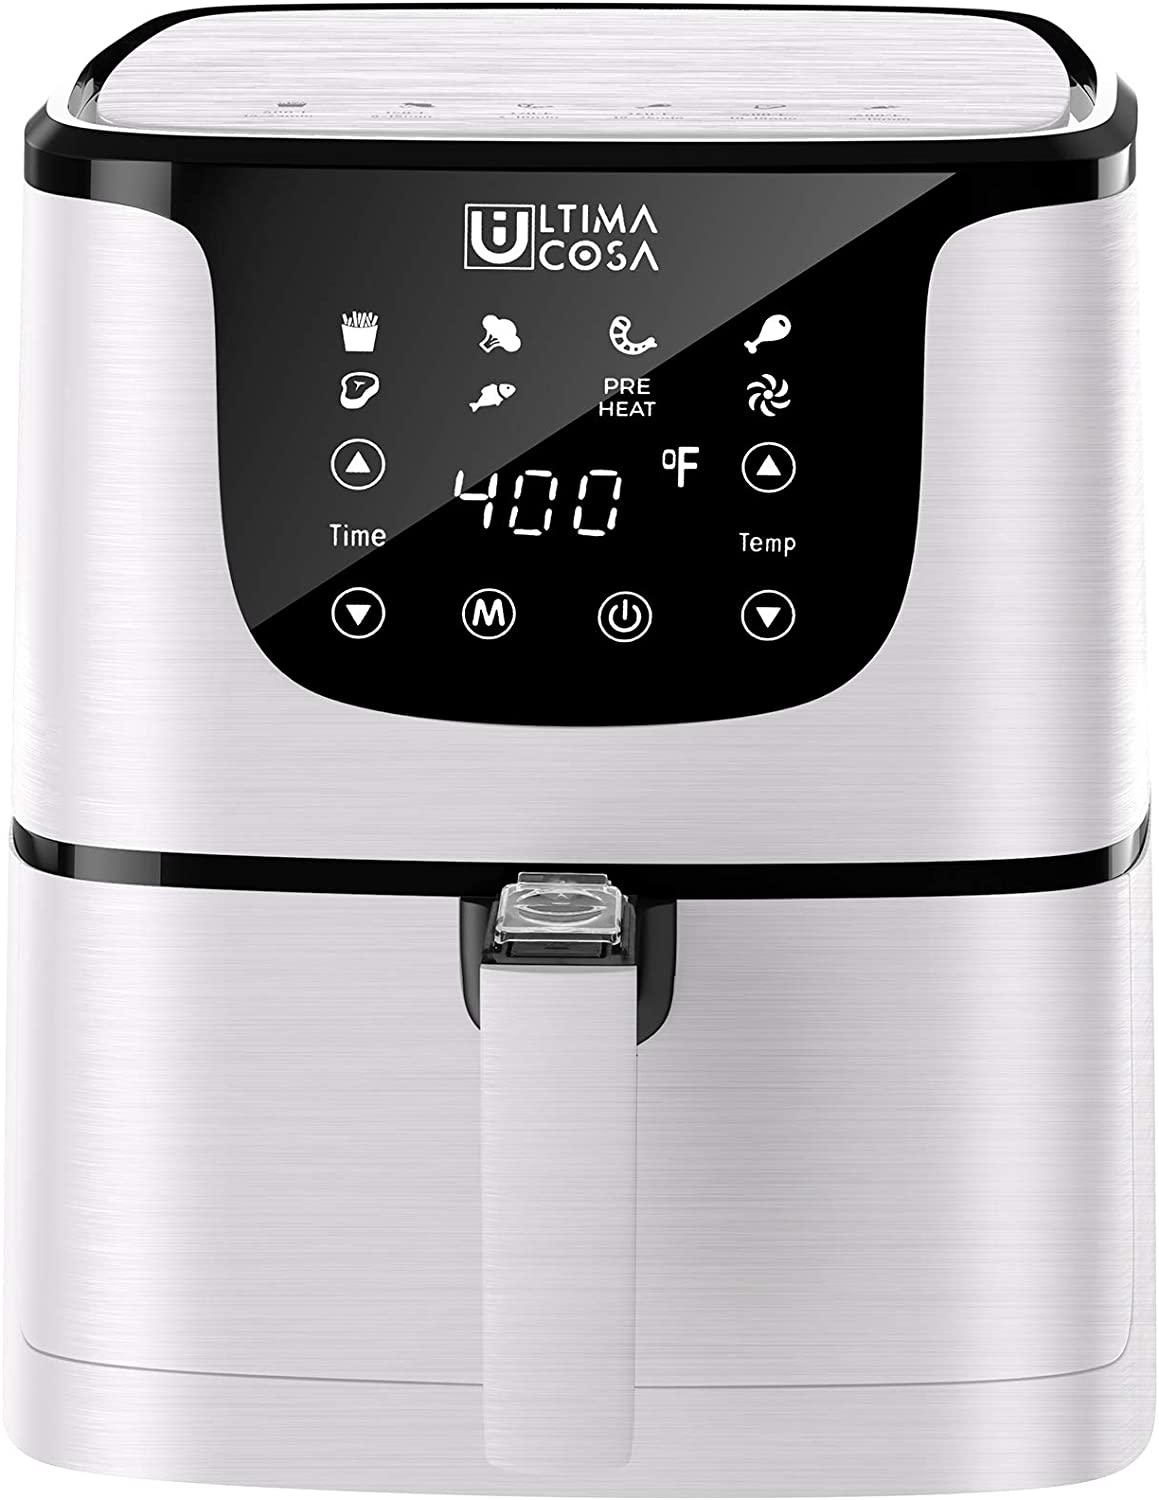 Ultima Cosa Air Fryer, 5.8QT Oil Free XL Electric Hot Air Fryers Oven, Programmable 7-in-1 Cooker with Preheat & Dryout, Equipped Digital Touchscreen and Nonstick Basket, English and French Manual , 1700W (WHITE)